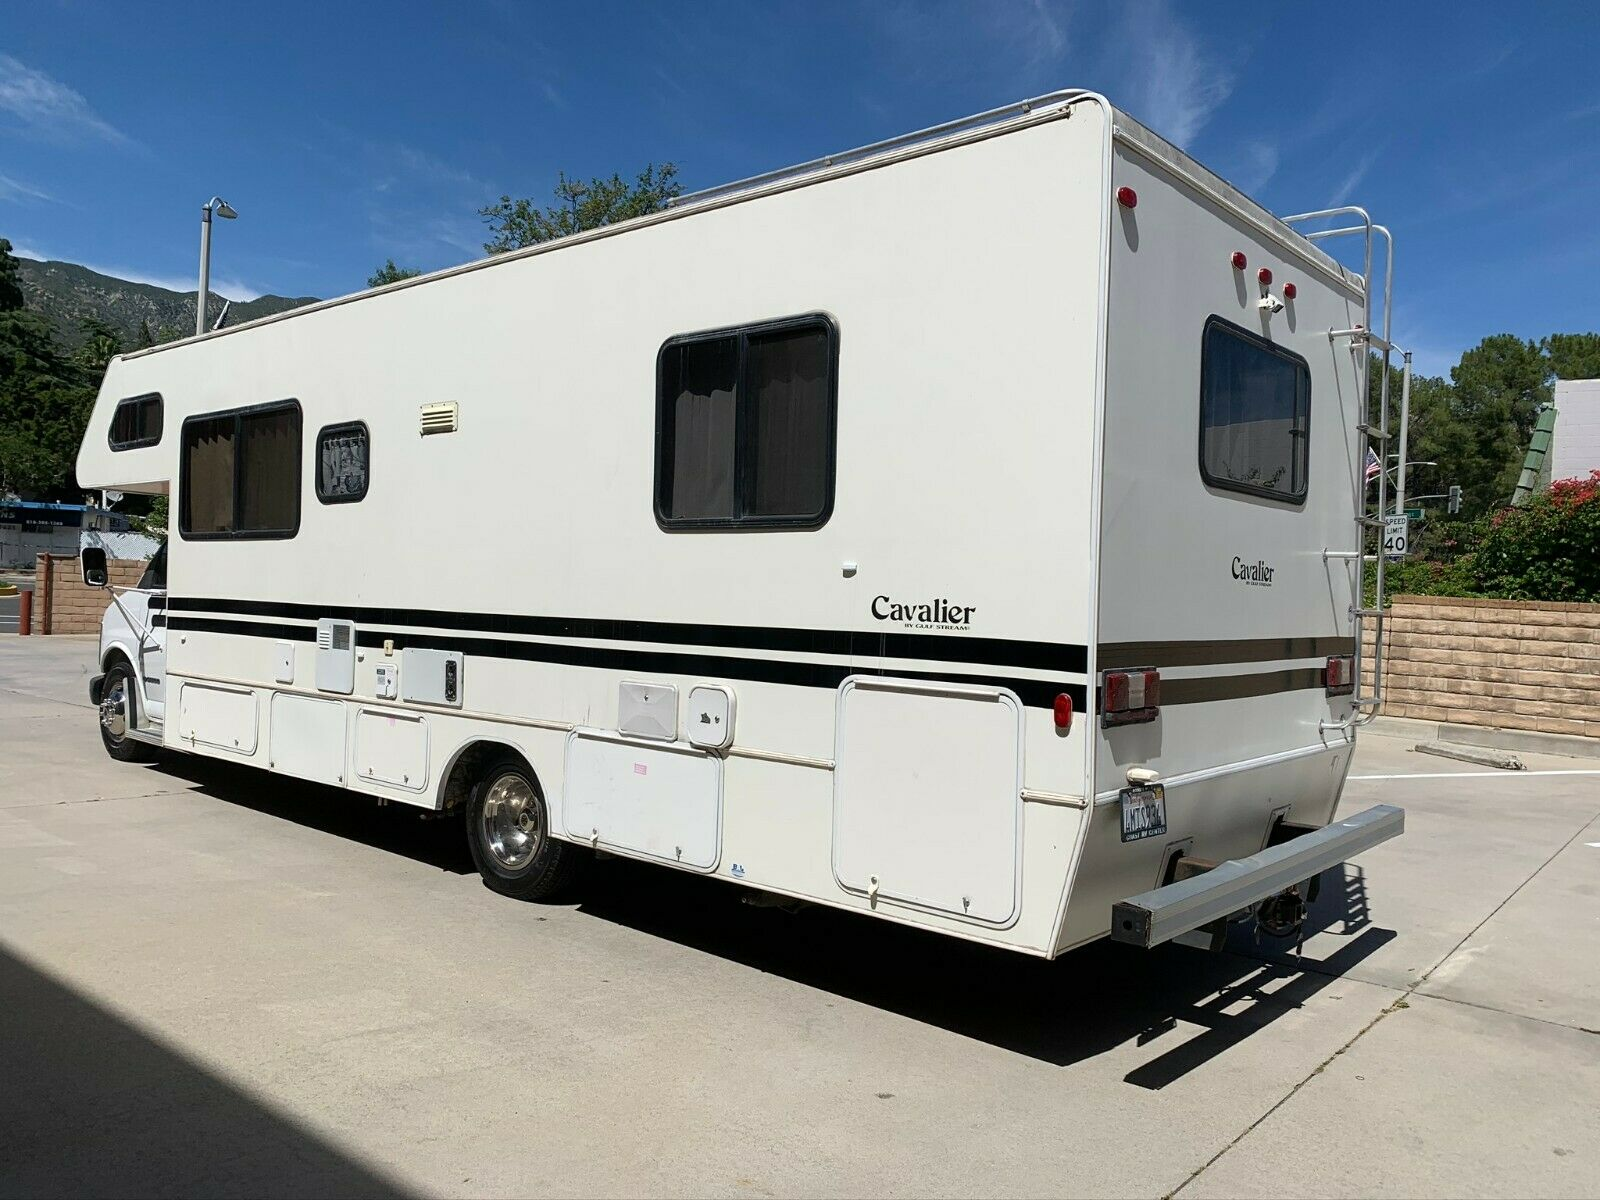 everything works 2001 Gulf Stream camper